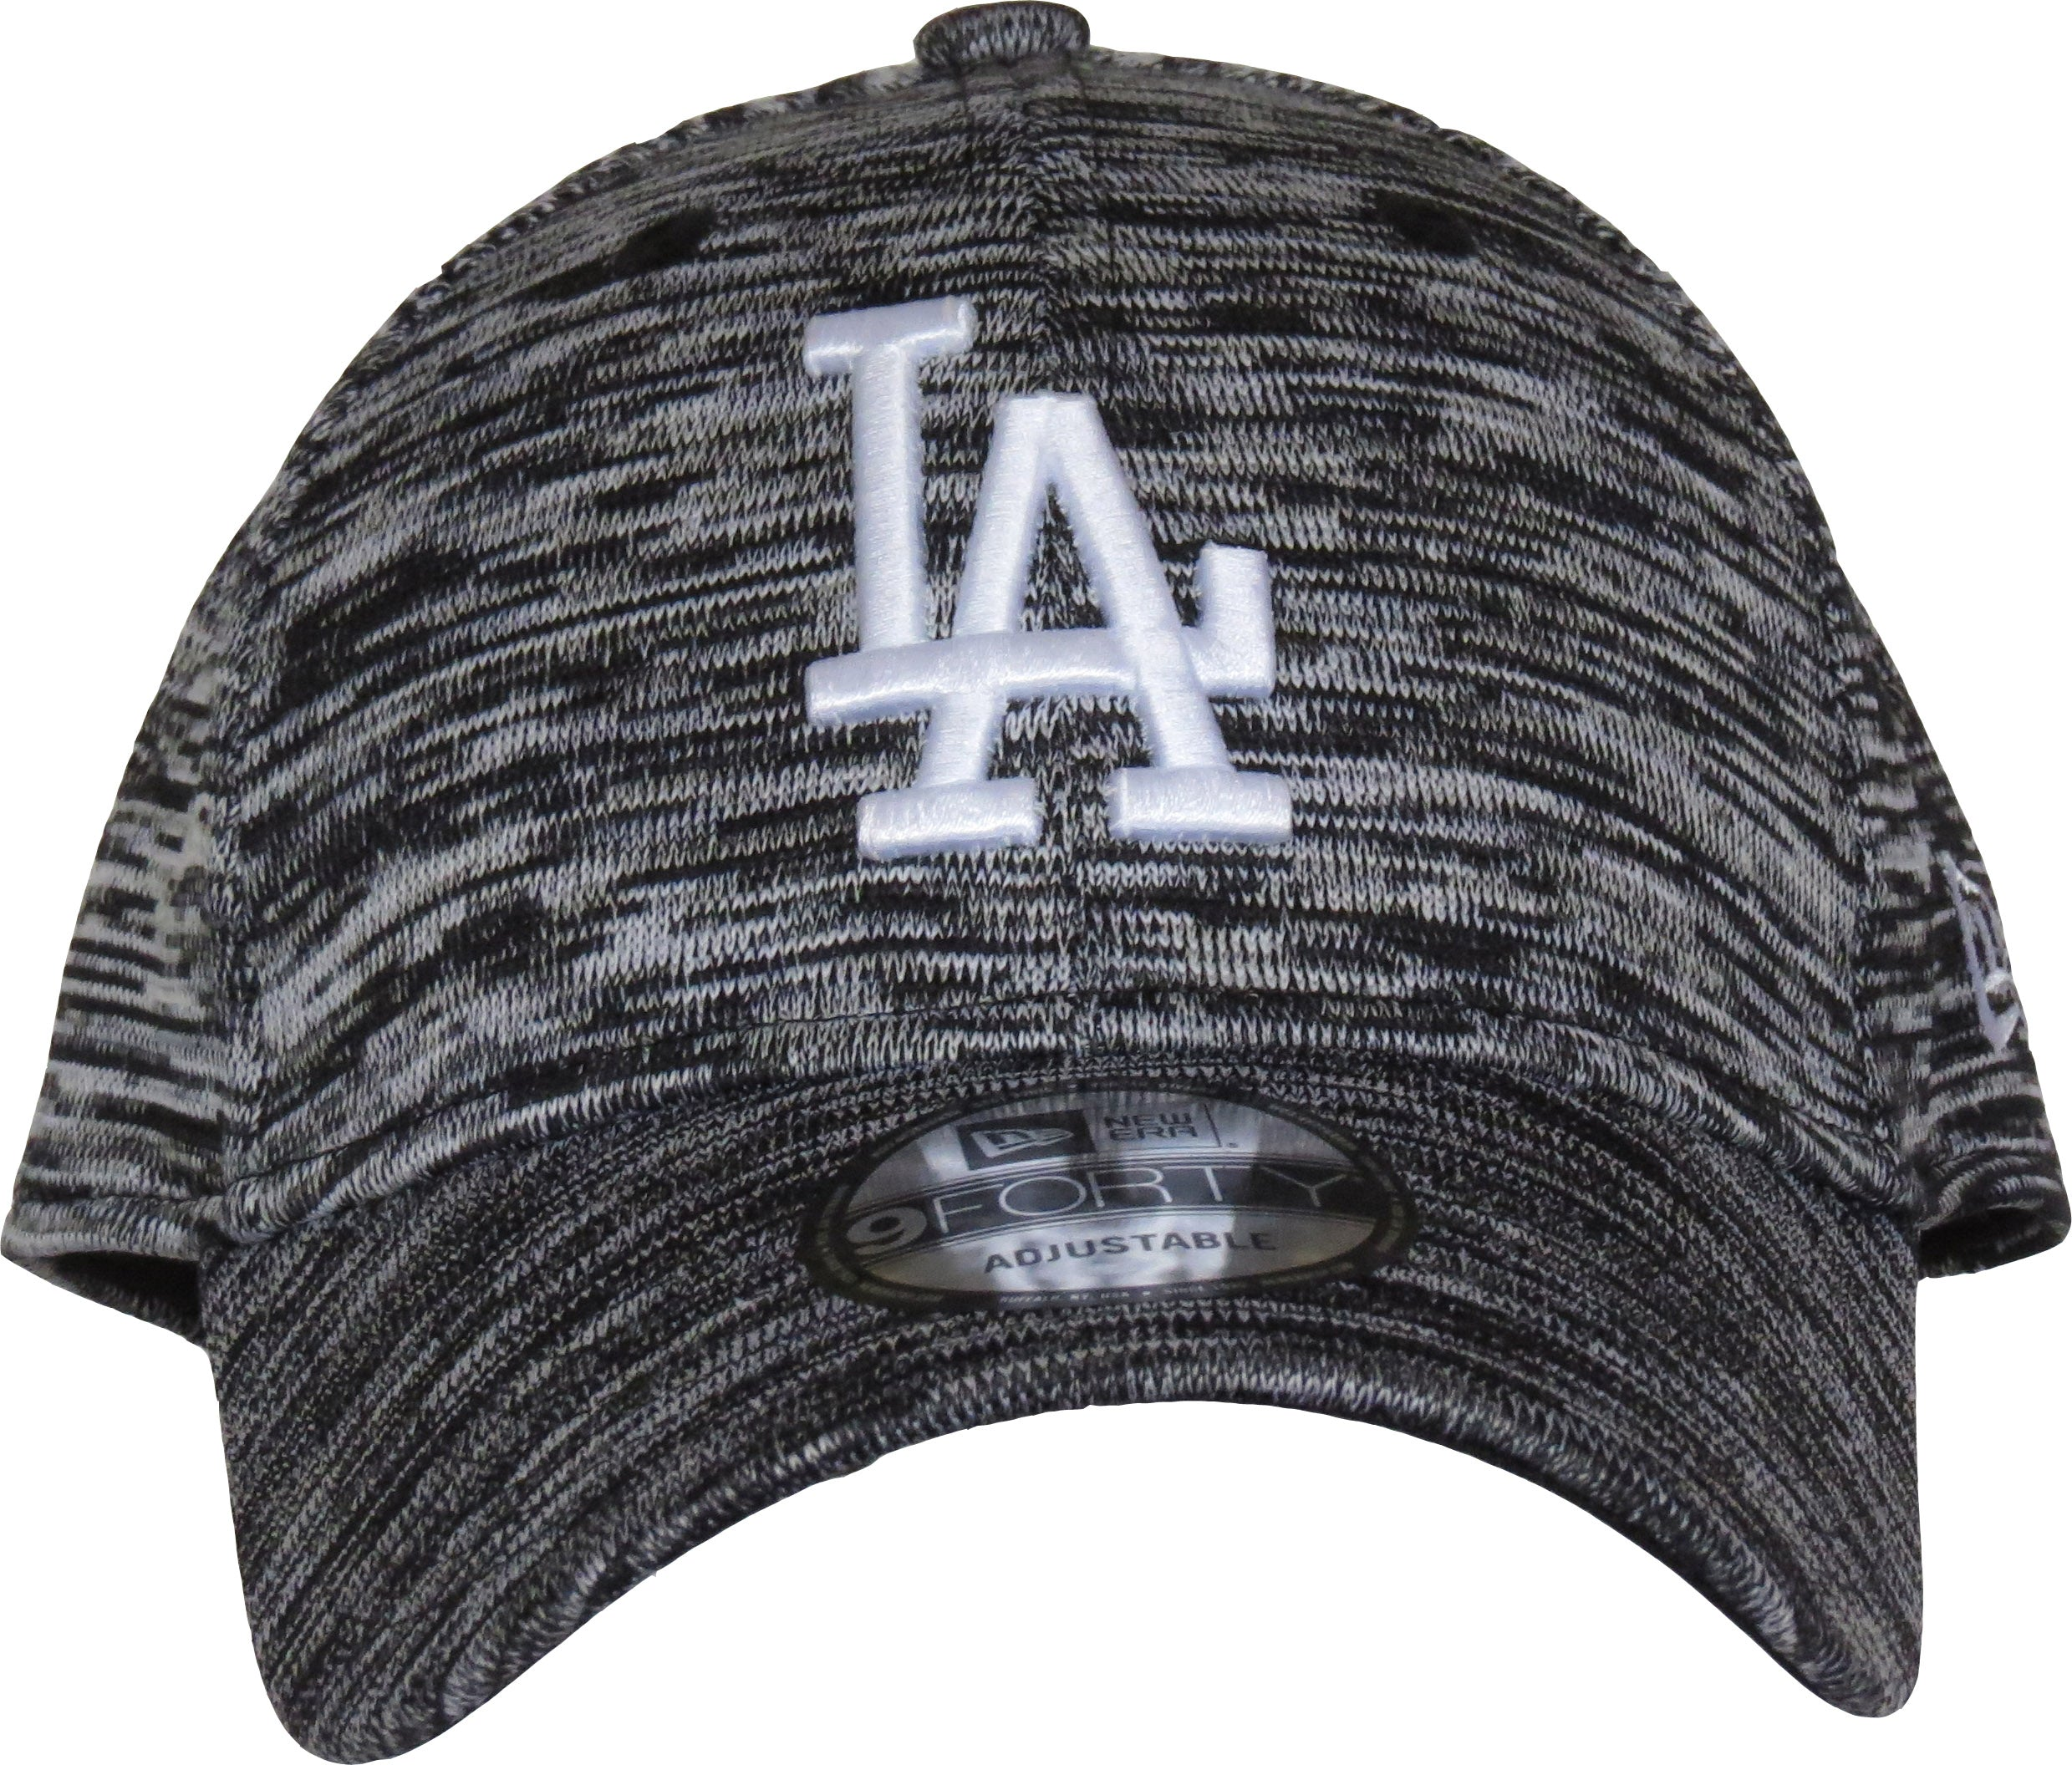 98b90760ed1 ... LA Dodgers New Era 940 Engineered Fit Black Baseball Cap - pumpheadgear